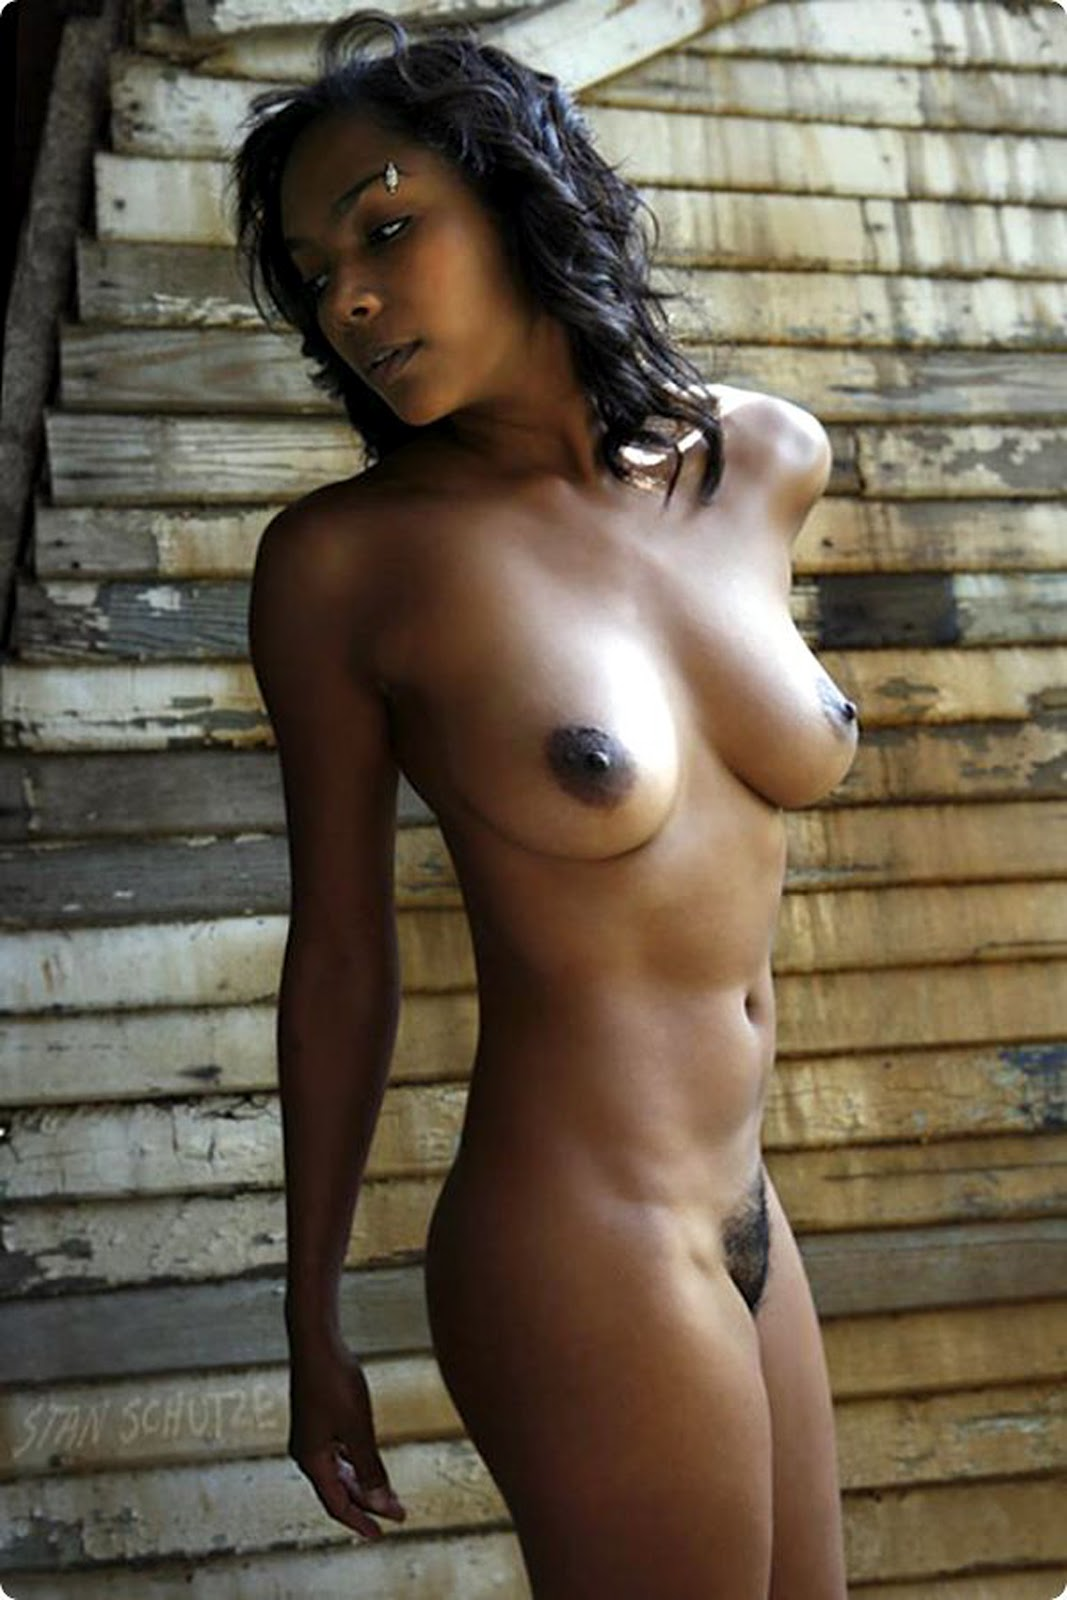 Sexy ebony nude models are